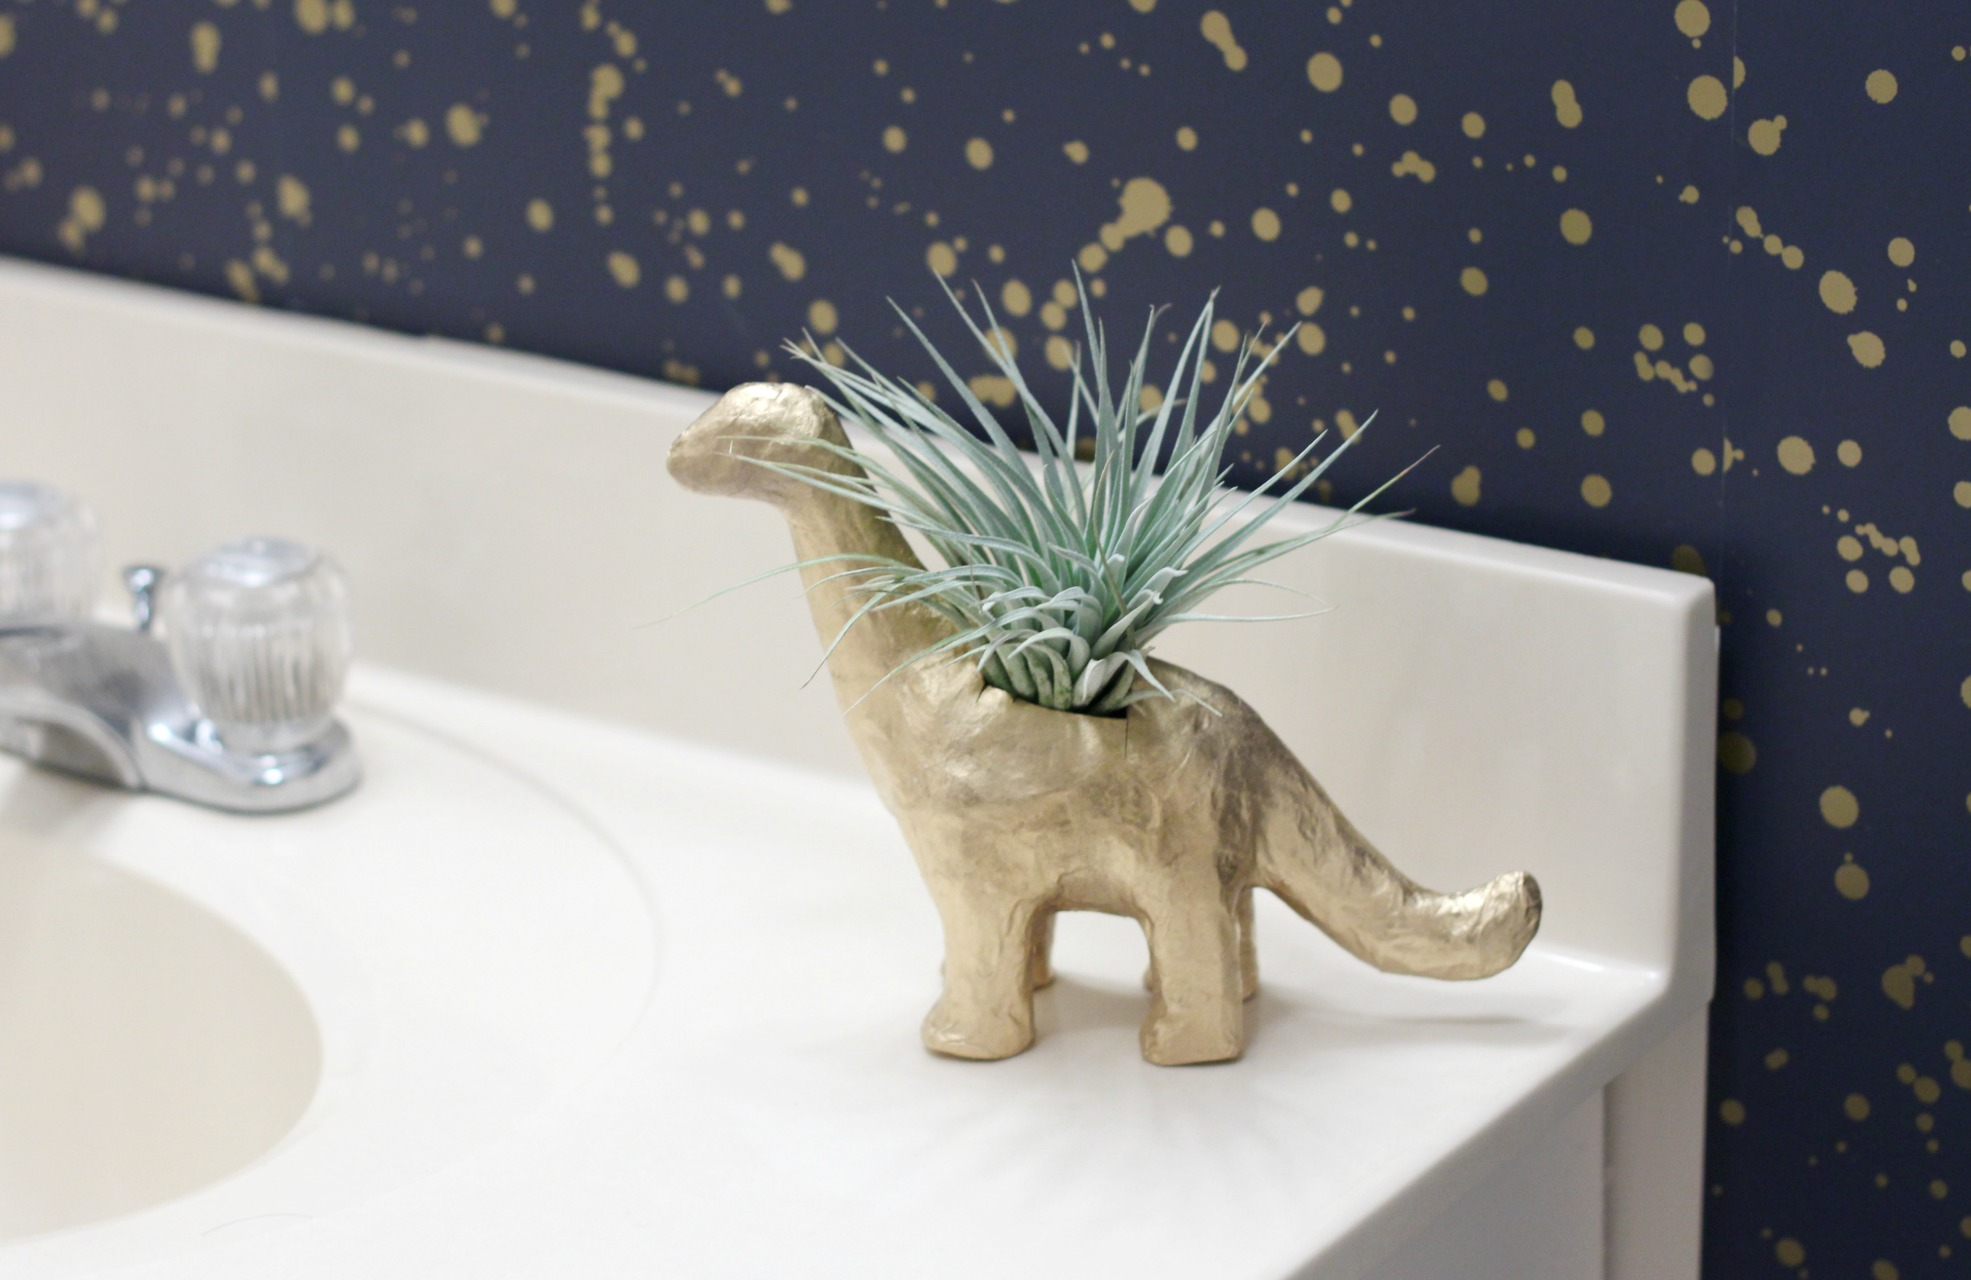 DIY Dinosaur Planter | How to Make an Animal Planter